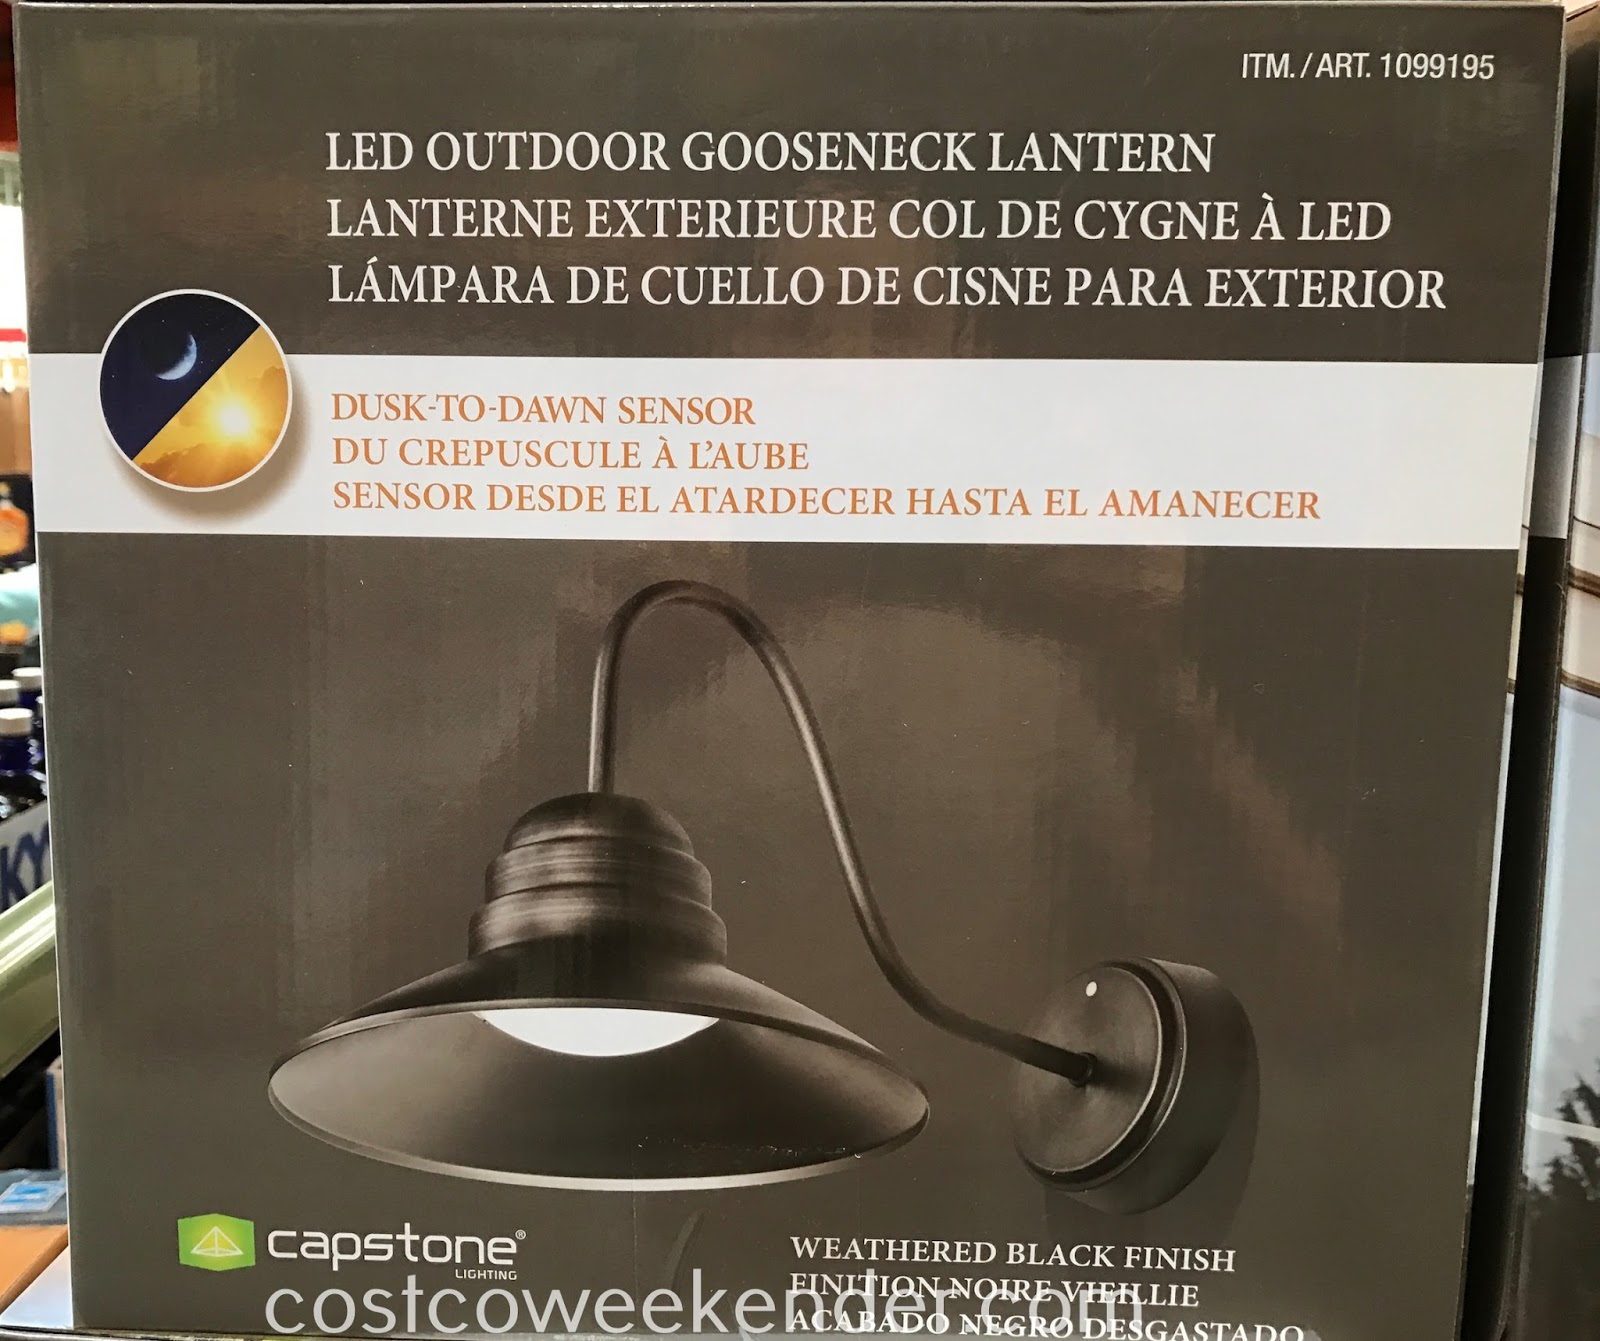 Costco 1099195 - Capstone LED Outdoor Gooseneck Lantern: great for any home's exterior